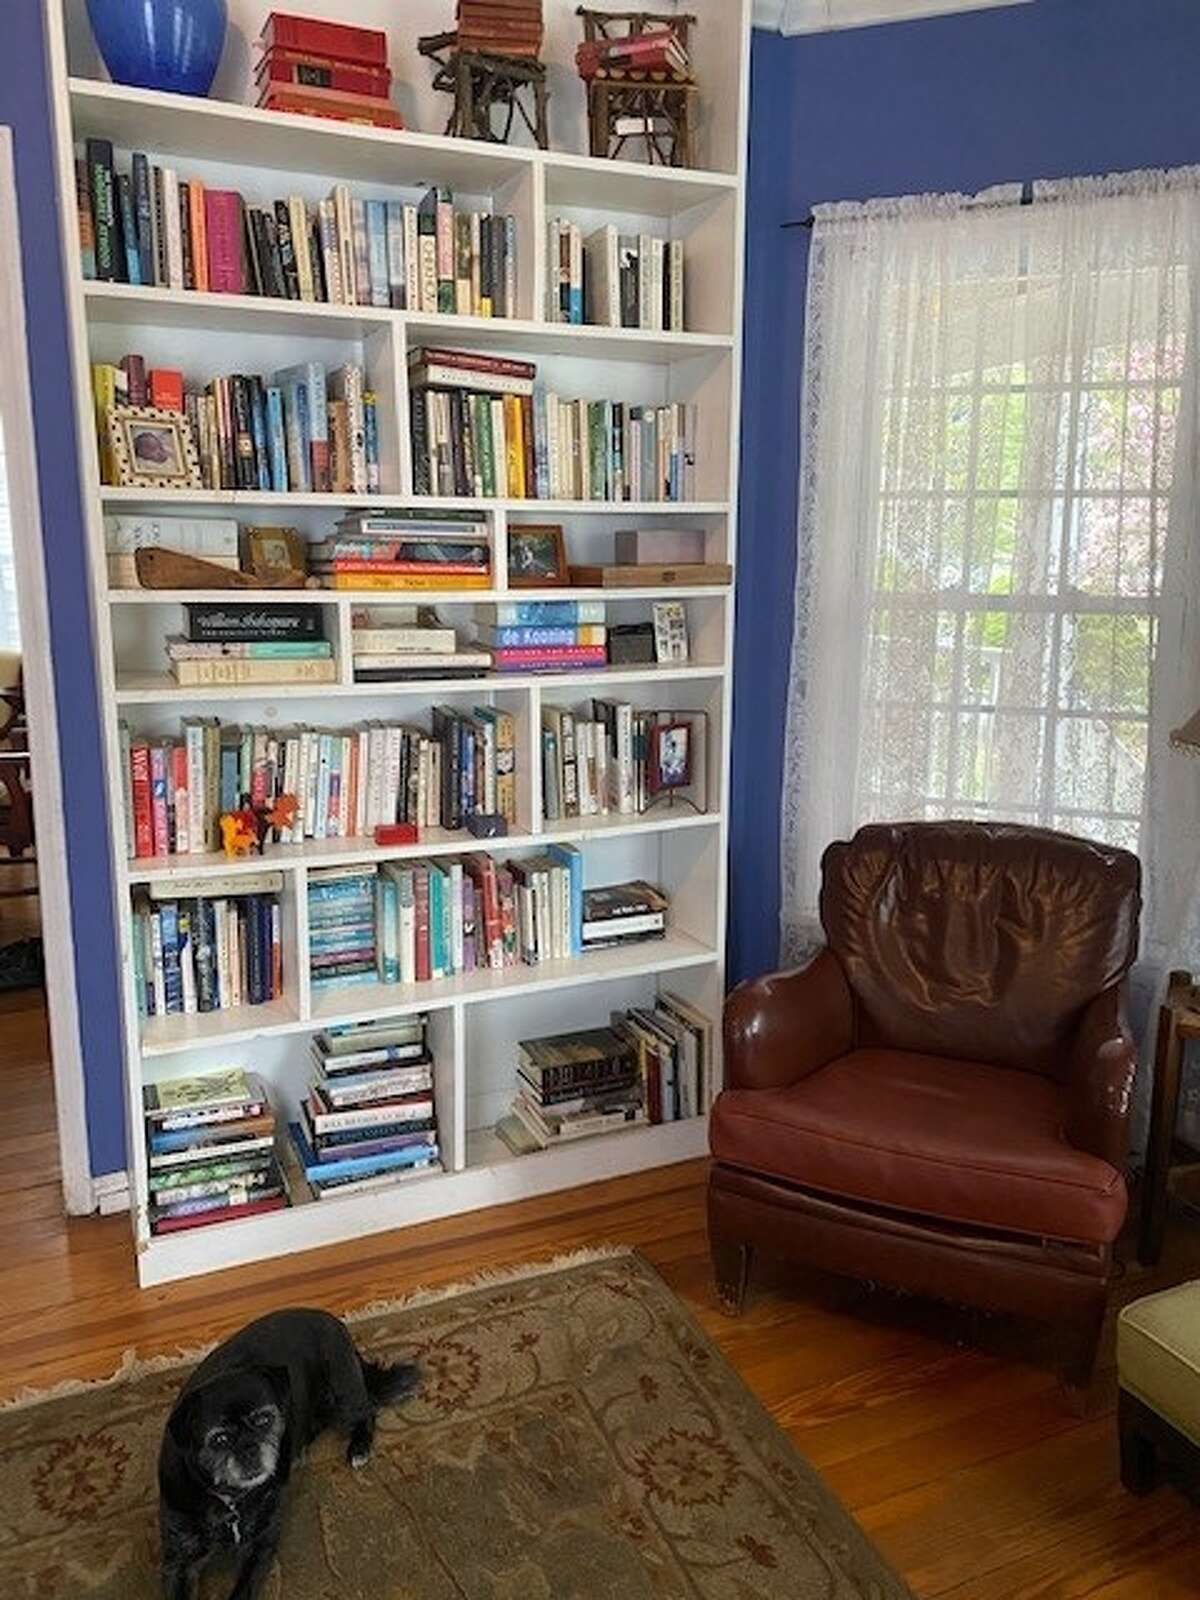 Donna Liquori's bookshelf, which recently went through a spring cleaning purge and organization, in her Delmar home.